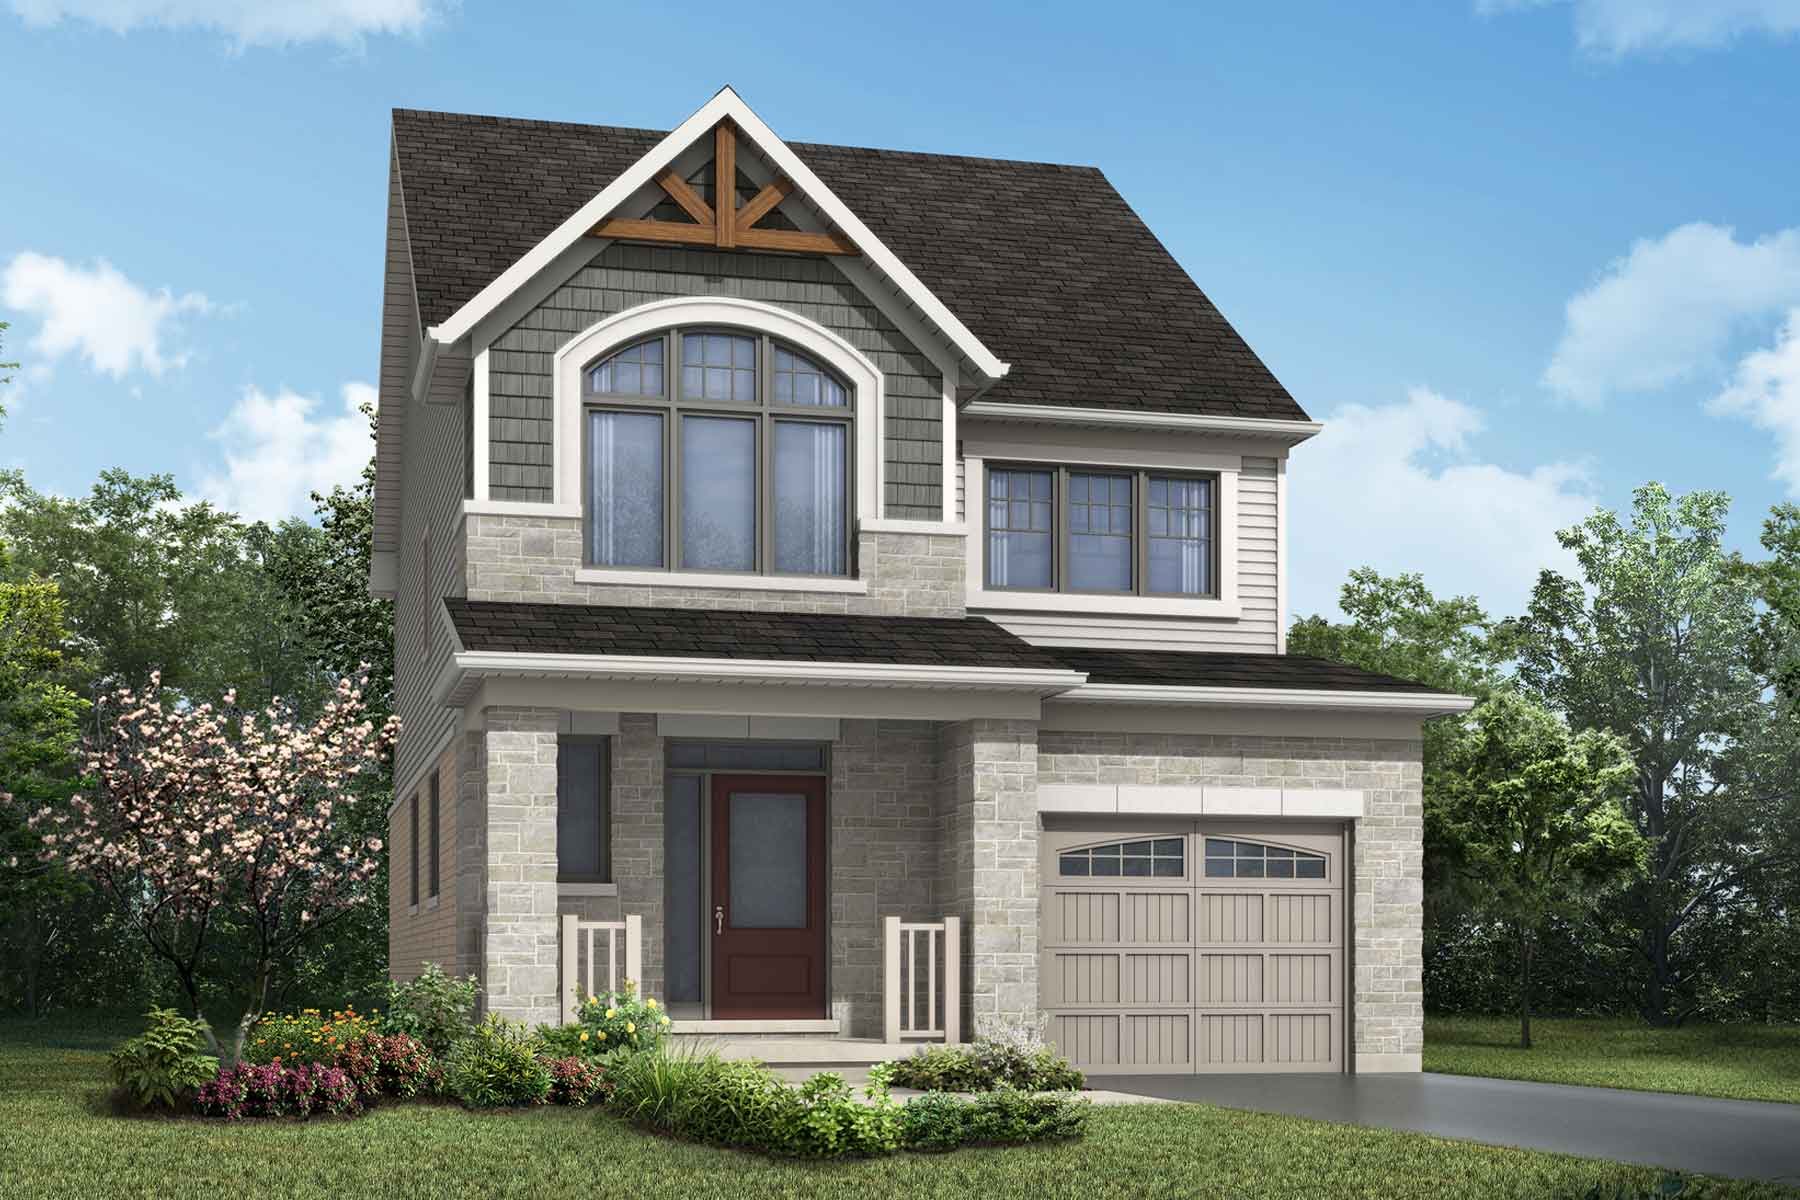 Wildflower Crossing muskokan_southestates_brigadoon_main in Kitchener Ontario by Mattamy Homes